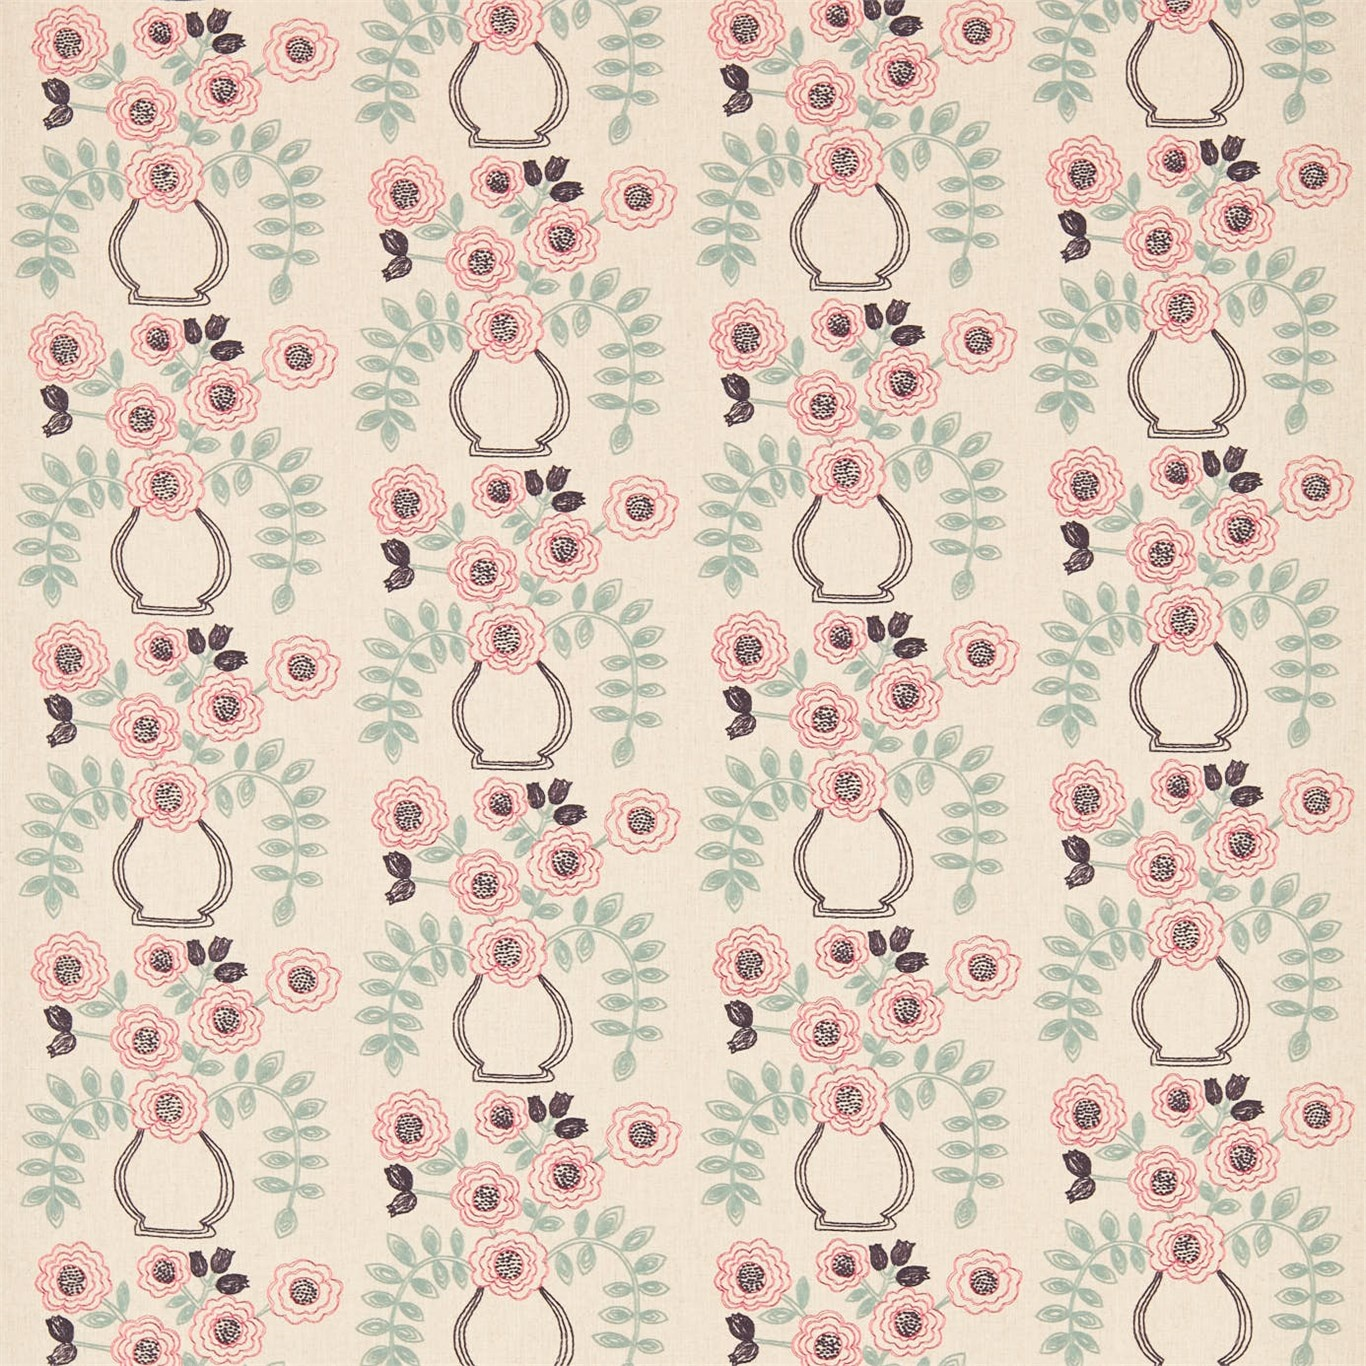 Image of Sanderson Home Flower Pot Coral/Celadon Curtain Fabric 235877